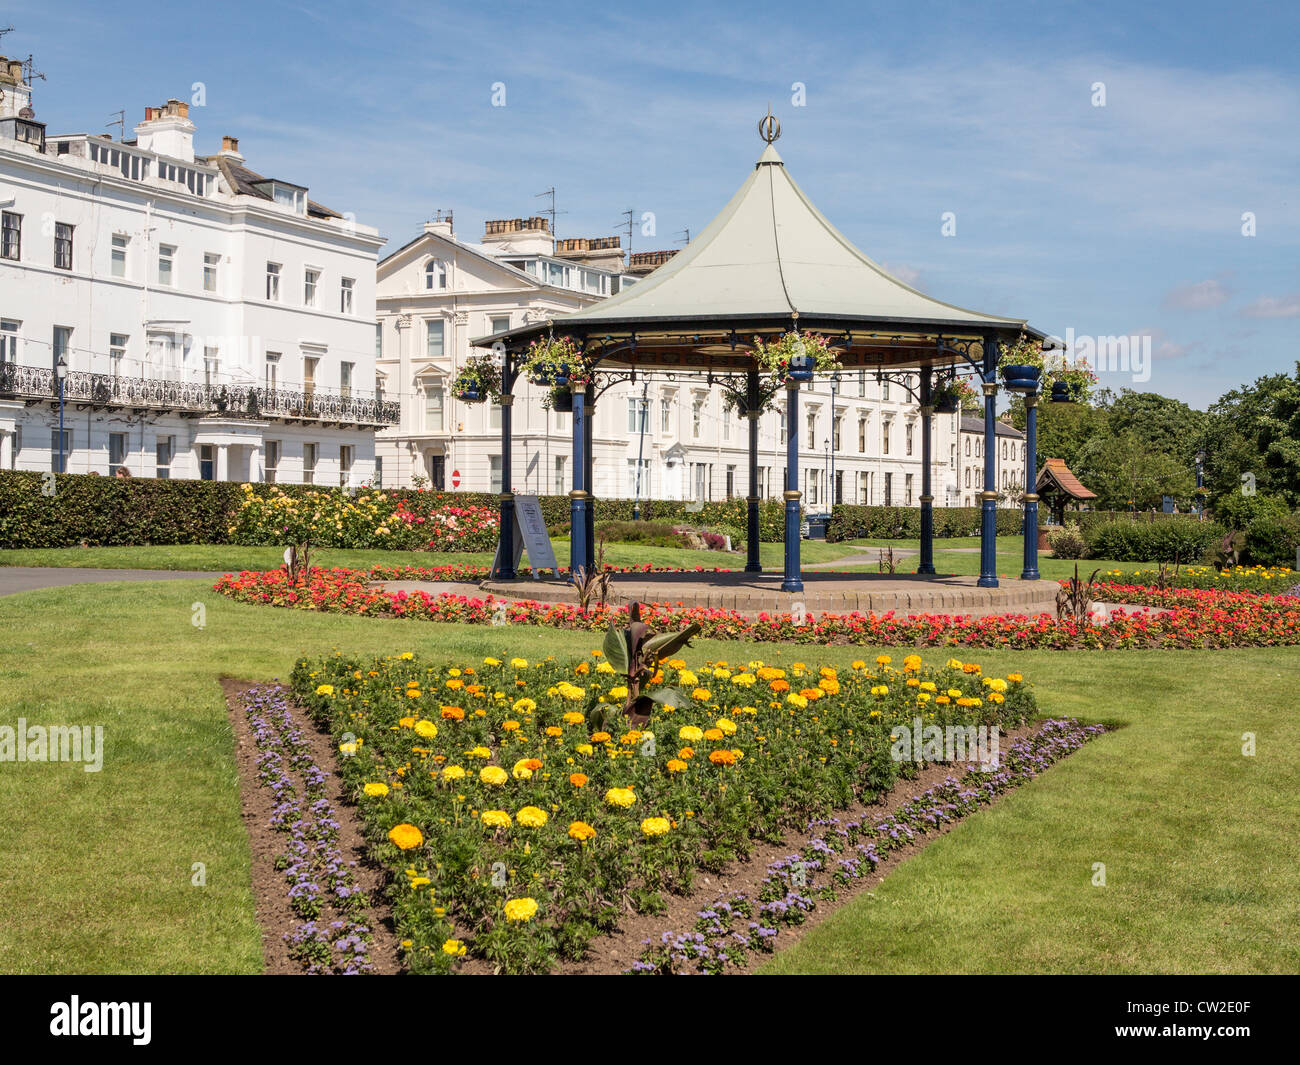 Bandstand and Crescent Gardens Filey North Yorkshire UK - Stock Image